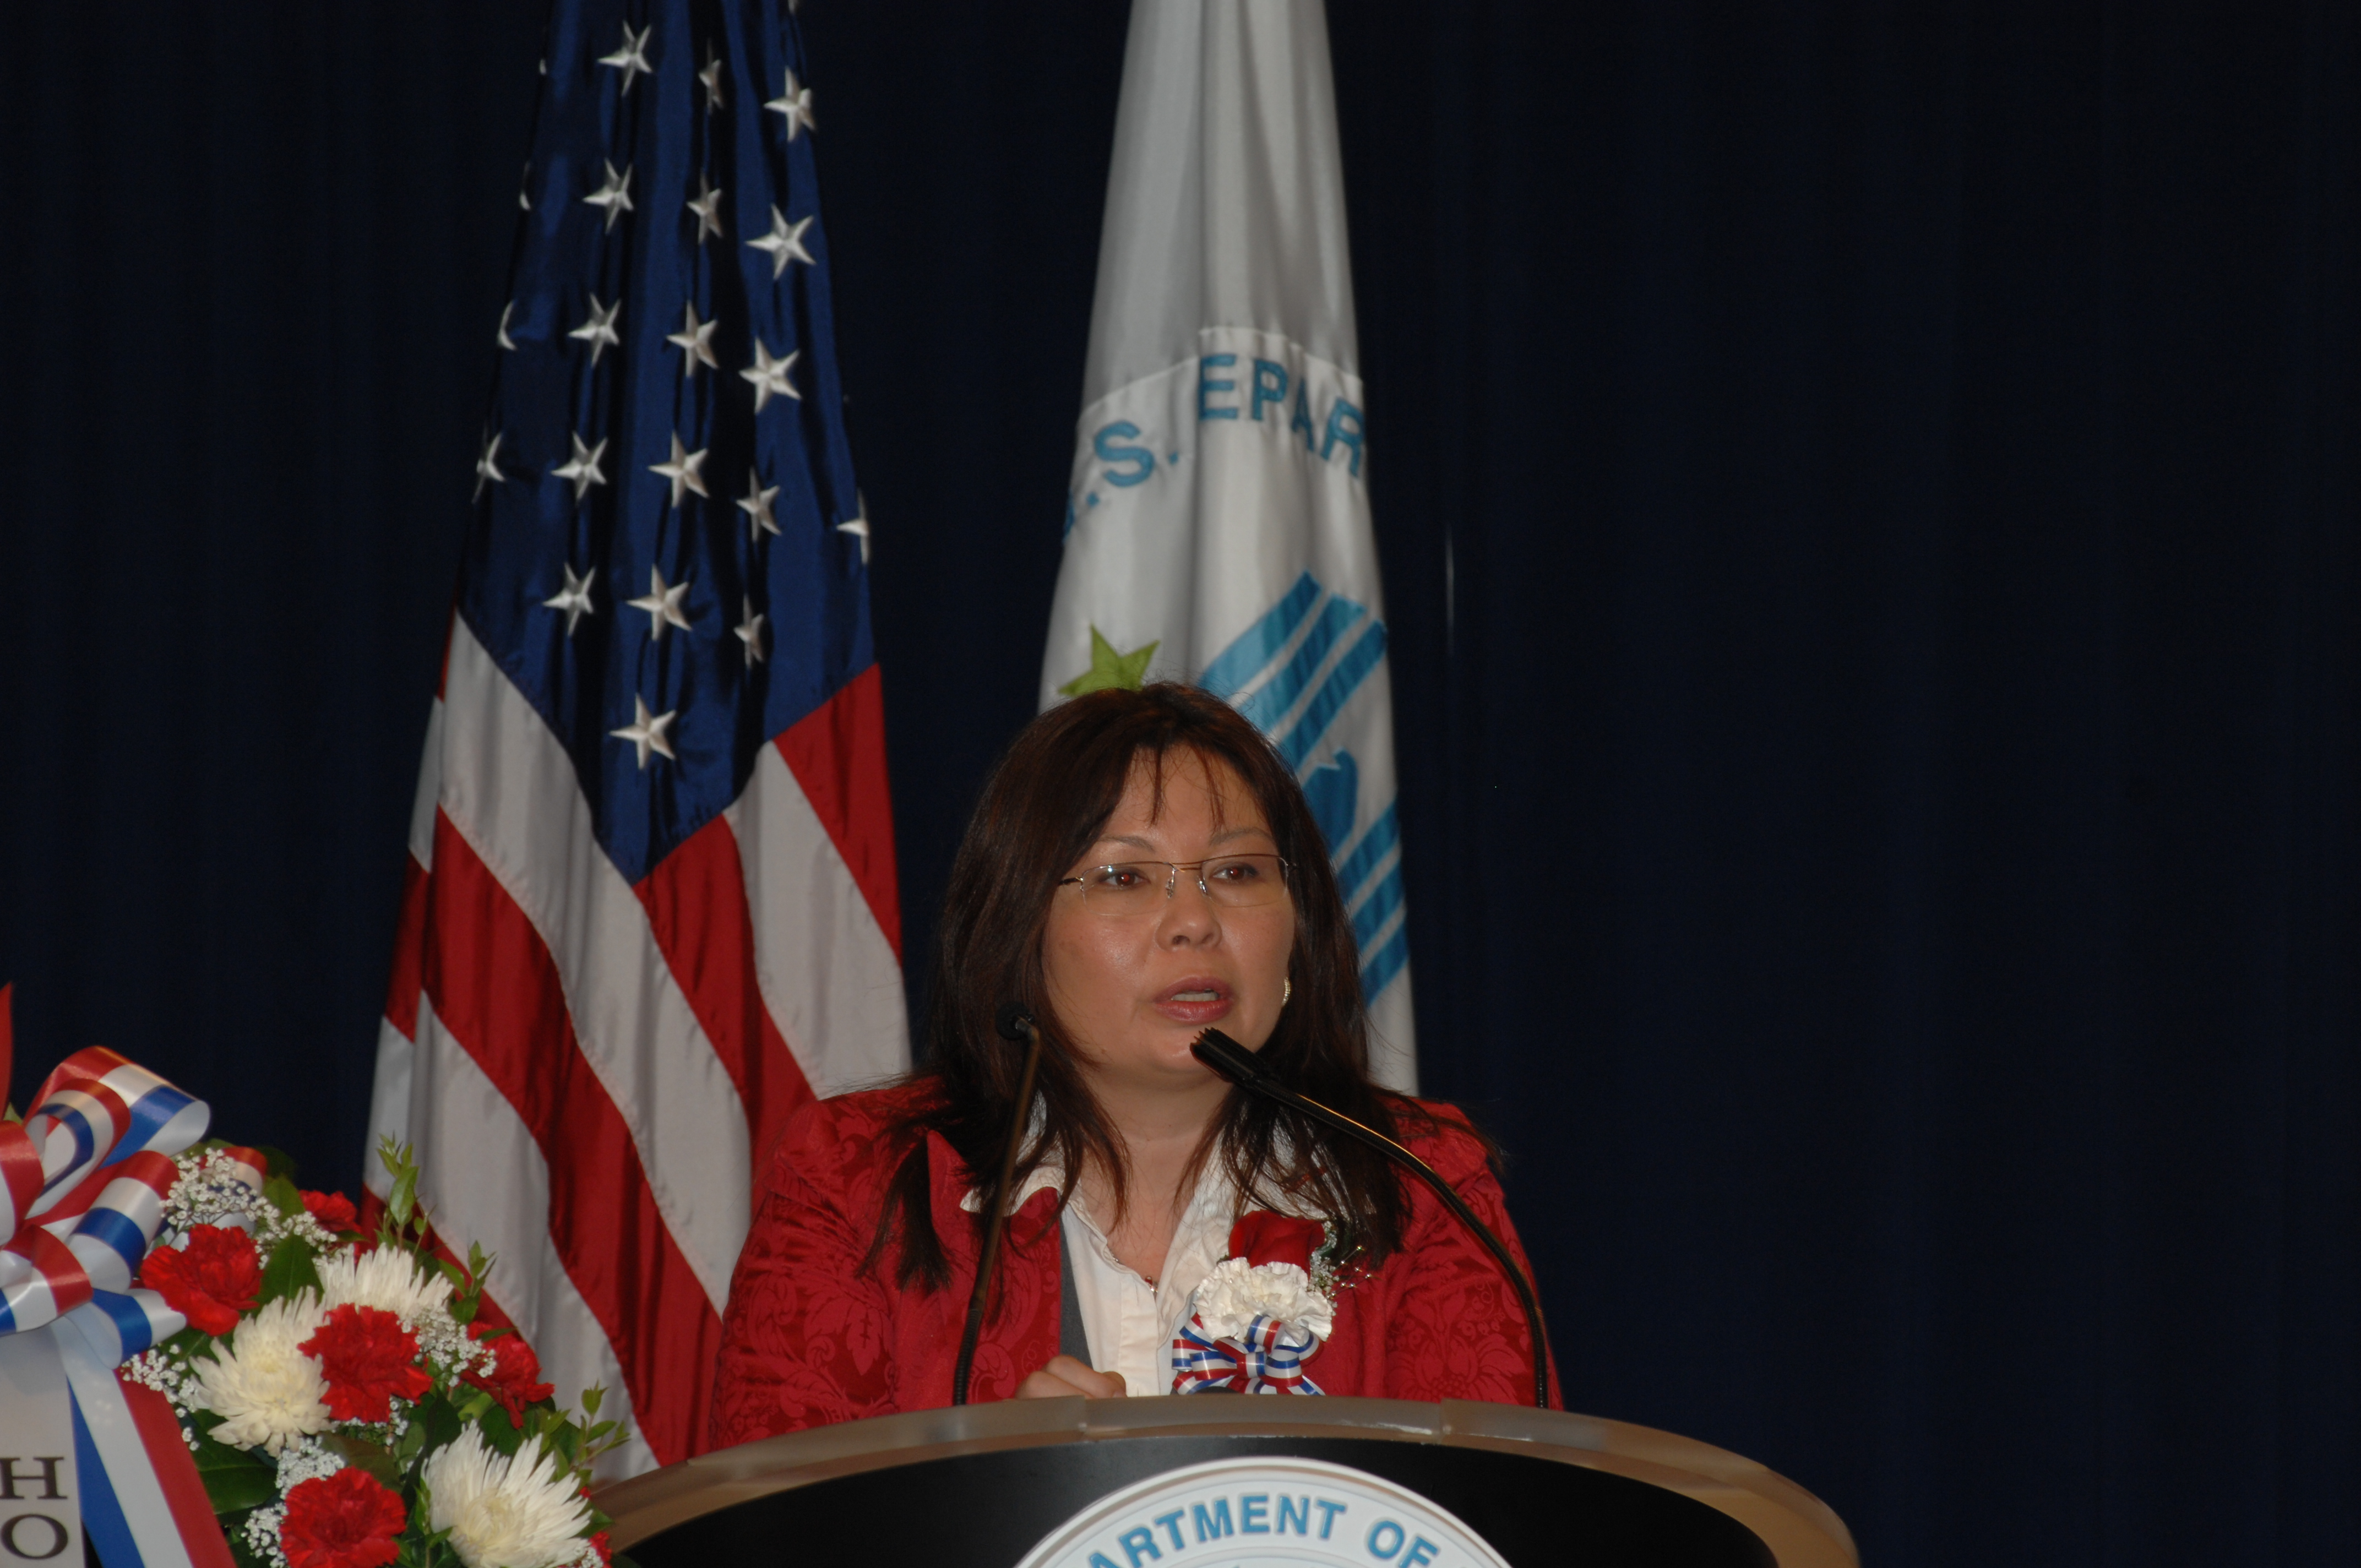 Veterans Day [commemoration activities at HUD headquarters, with Veterans Affairs Assistant Secretary for Public and Intergovernmental Affairs, Tammy Duckworth, among the guest speakers]